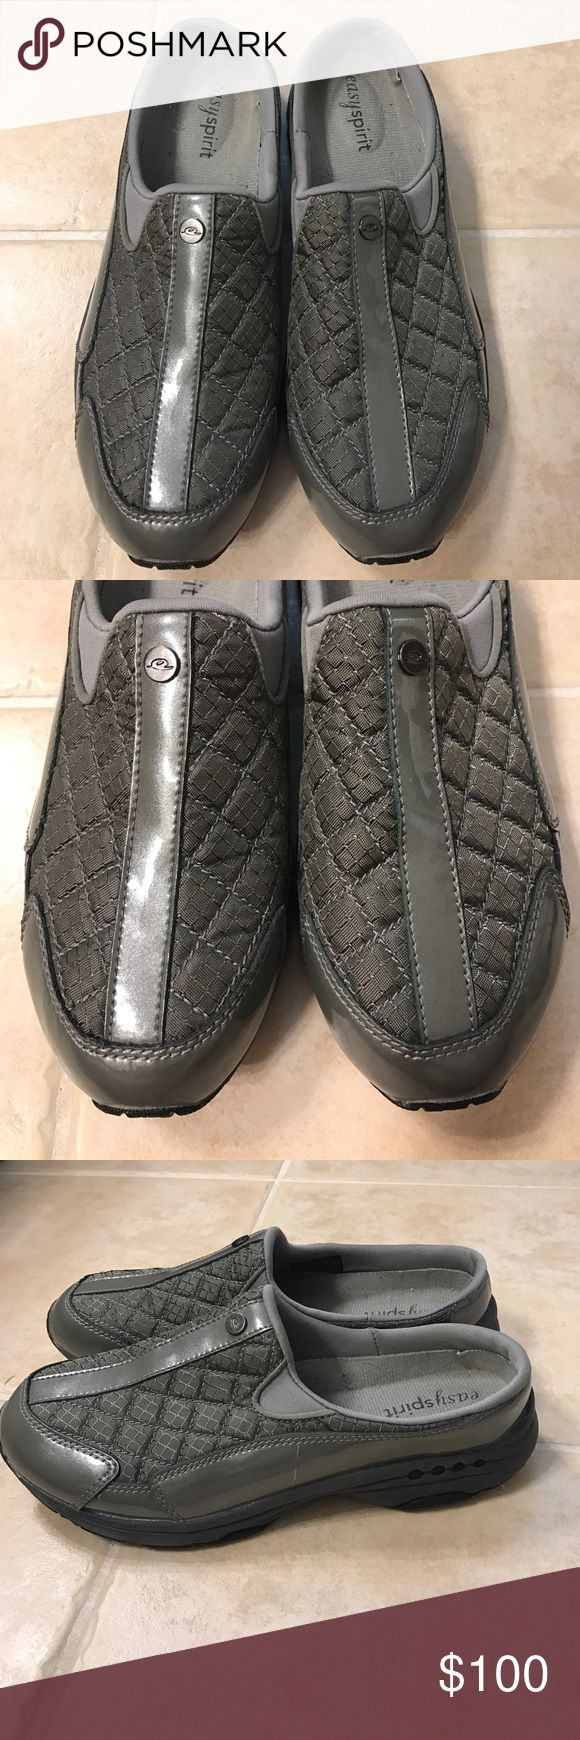 Size 7.5 M grey Easy Spirit slip on shoes Size 7.5 M grey Easy Spirit slip on shoes Easy Spirit Shoes Mules & Clogs